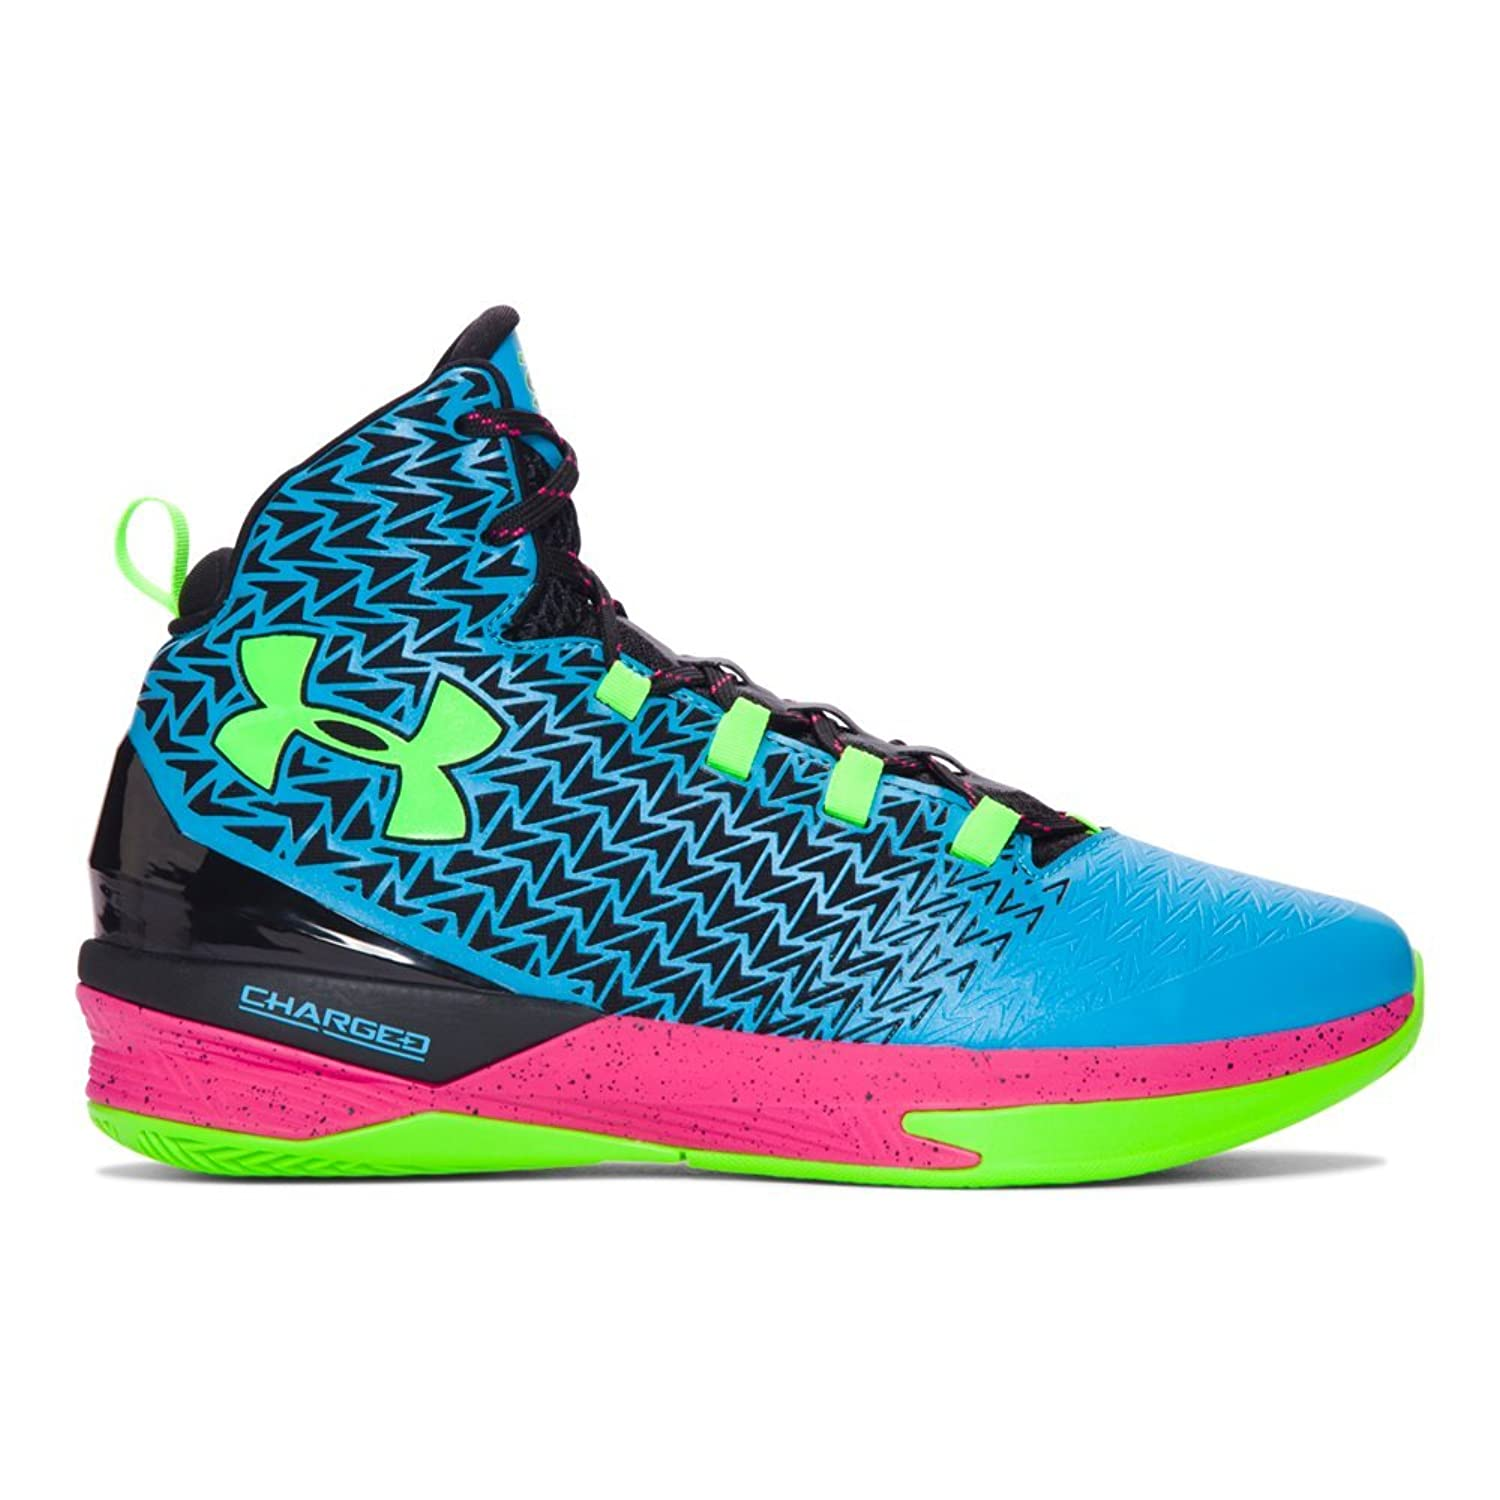 34be71bc8b3f new Men s Under Armour Clutchfit Drive 3 Basketball Shoes ...